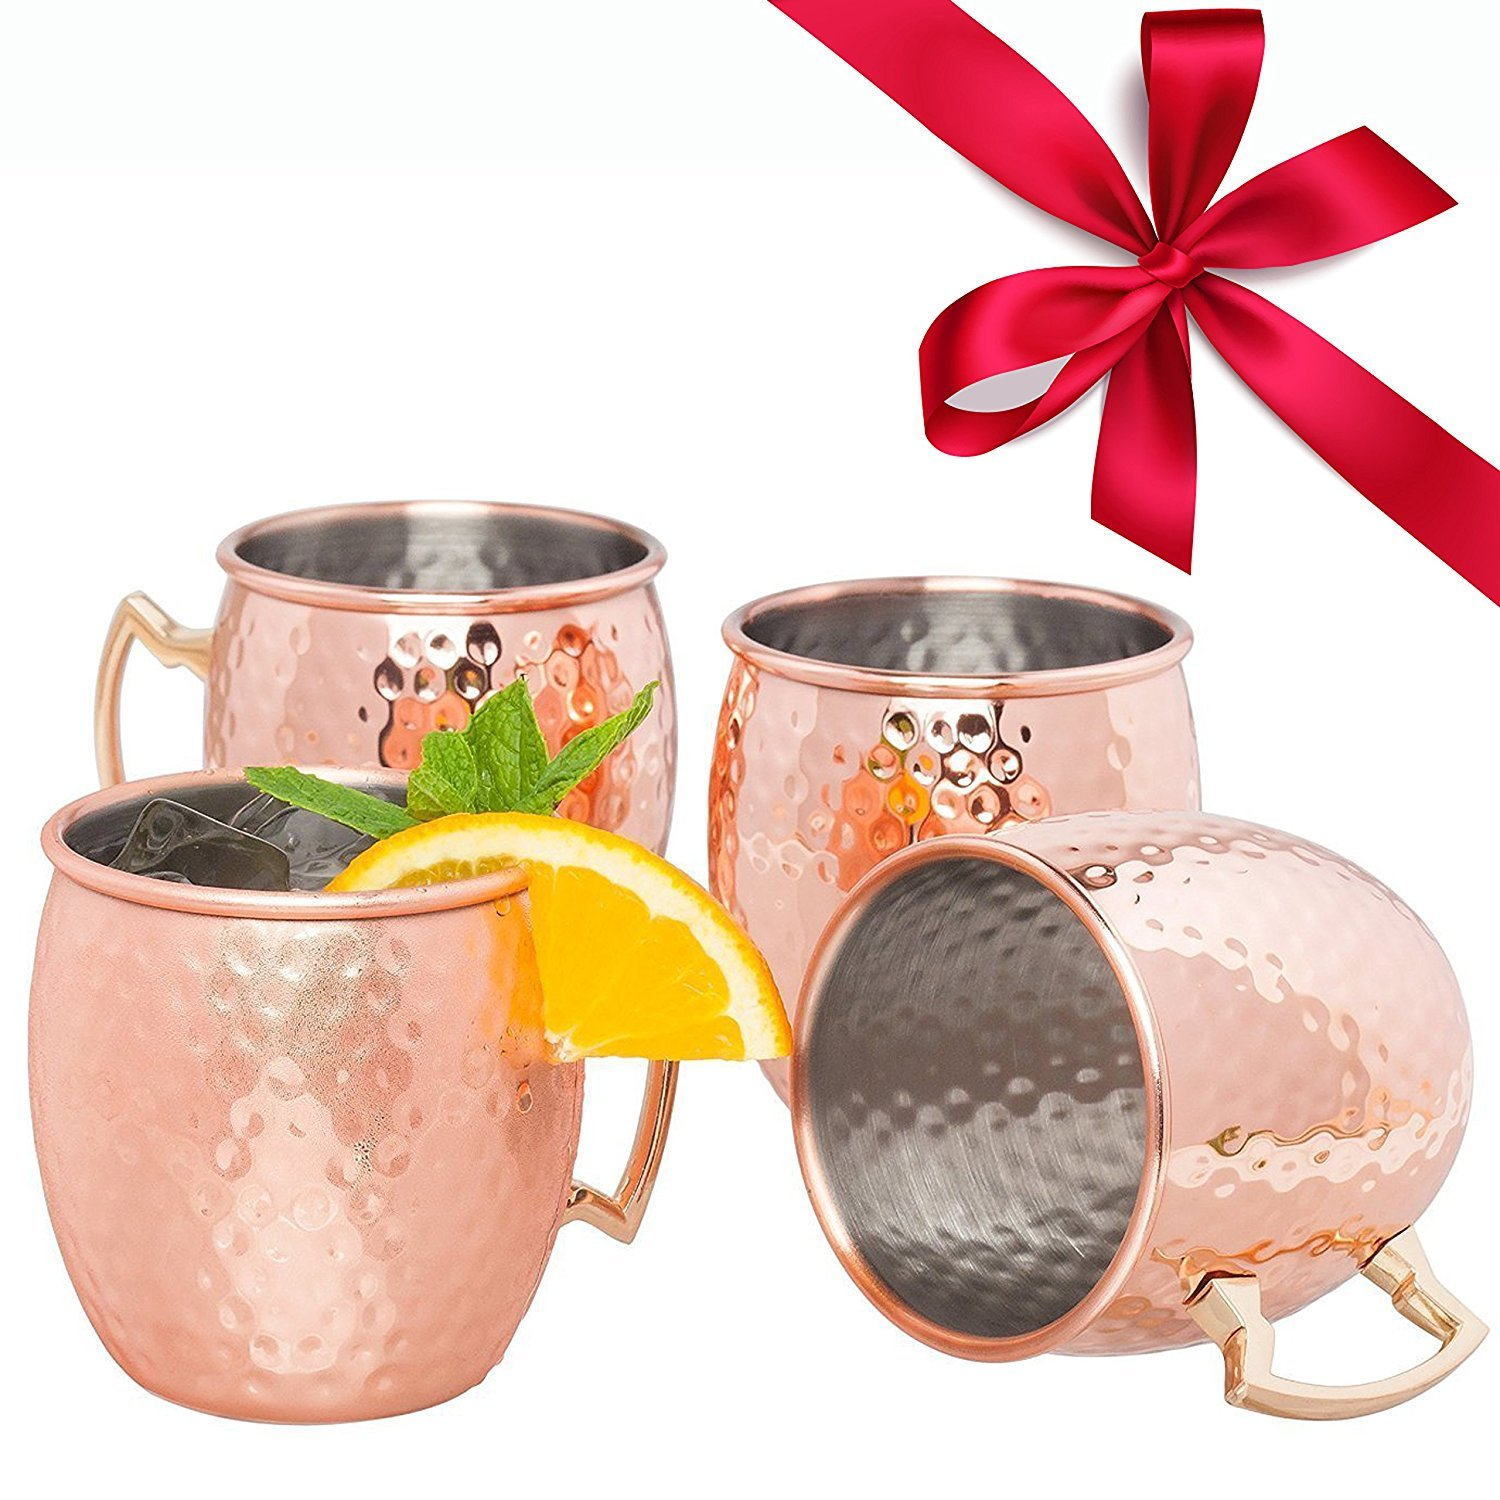 Moscow Mule Copper Mugs Set – 4 Moscow Mule Mugs by Livin' Well w/Stainless Steel Lining + Moscow Mule Recipes for 100% Handcrafted Mule Copper Mugs